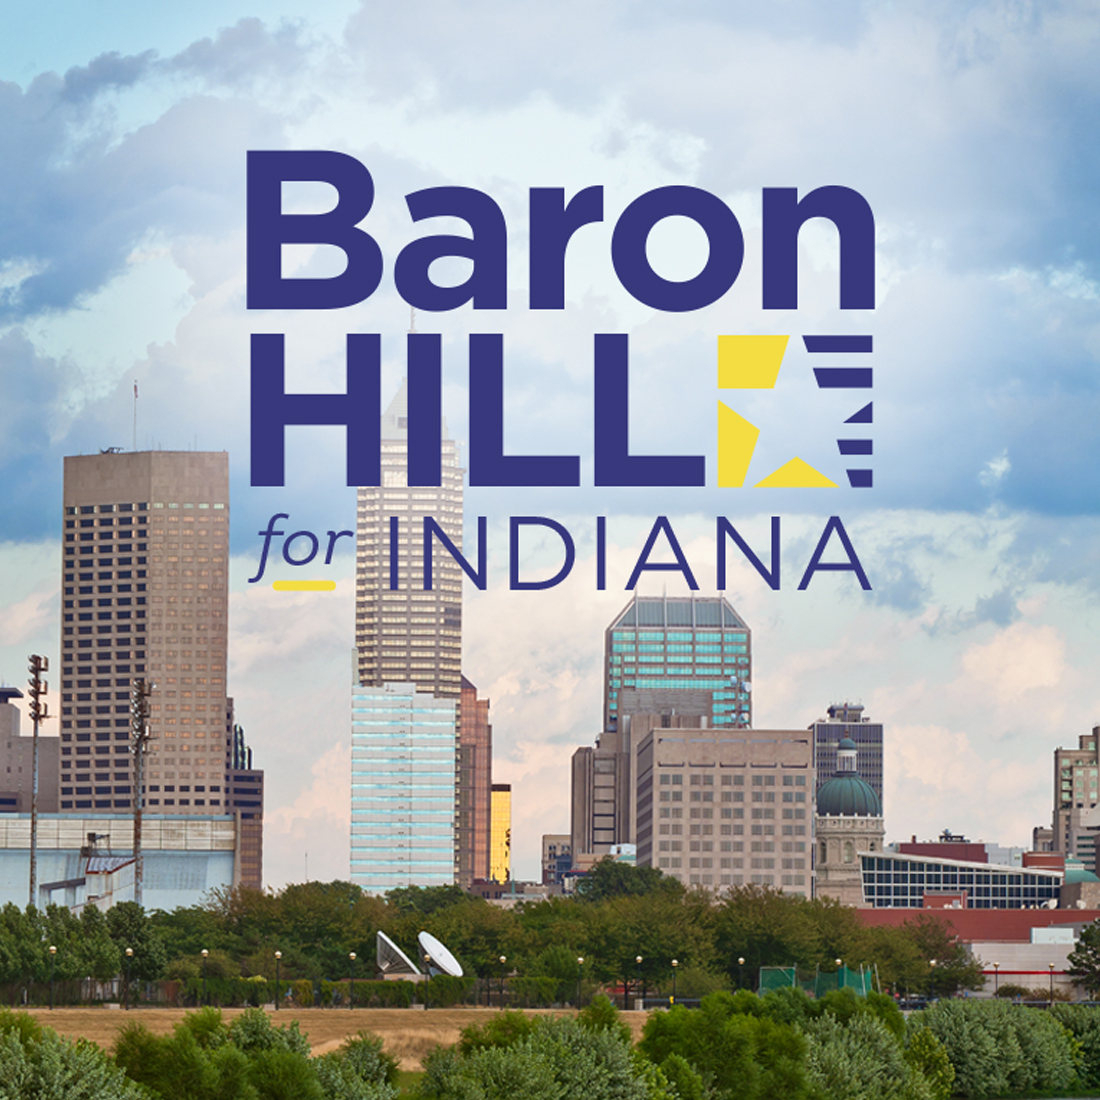 Baron Hill for Indiana 2016 - Branding and Website Design